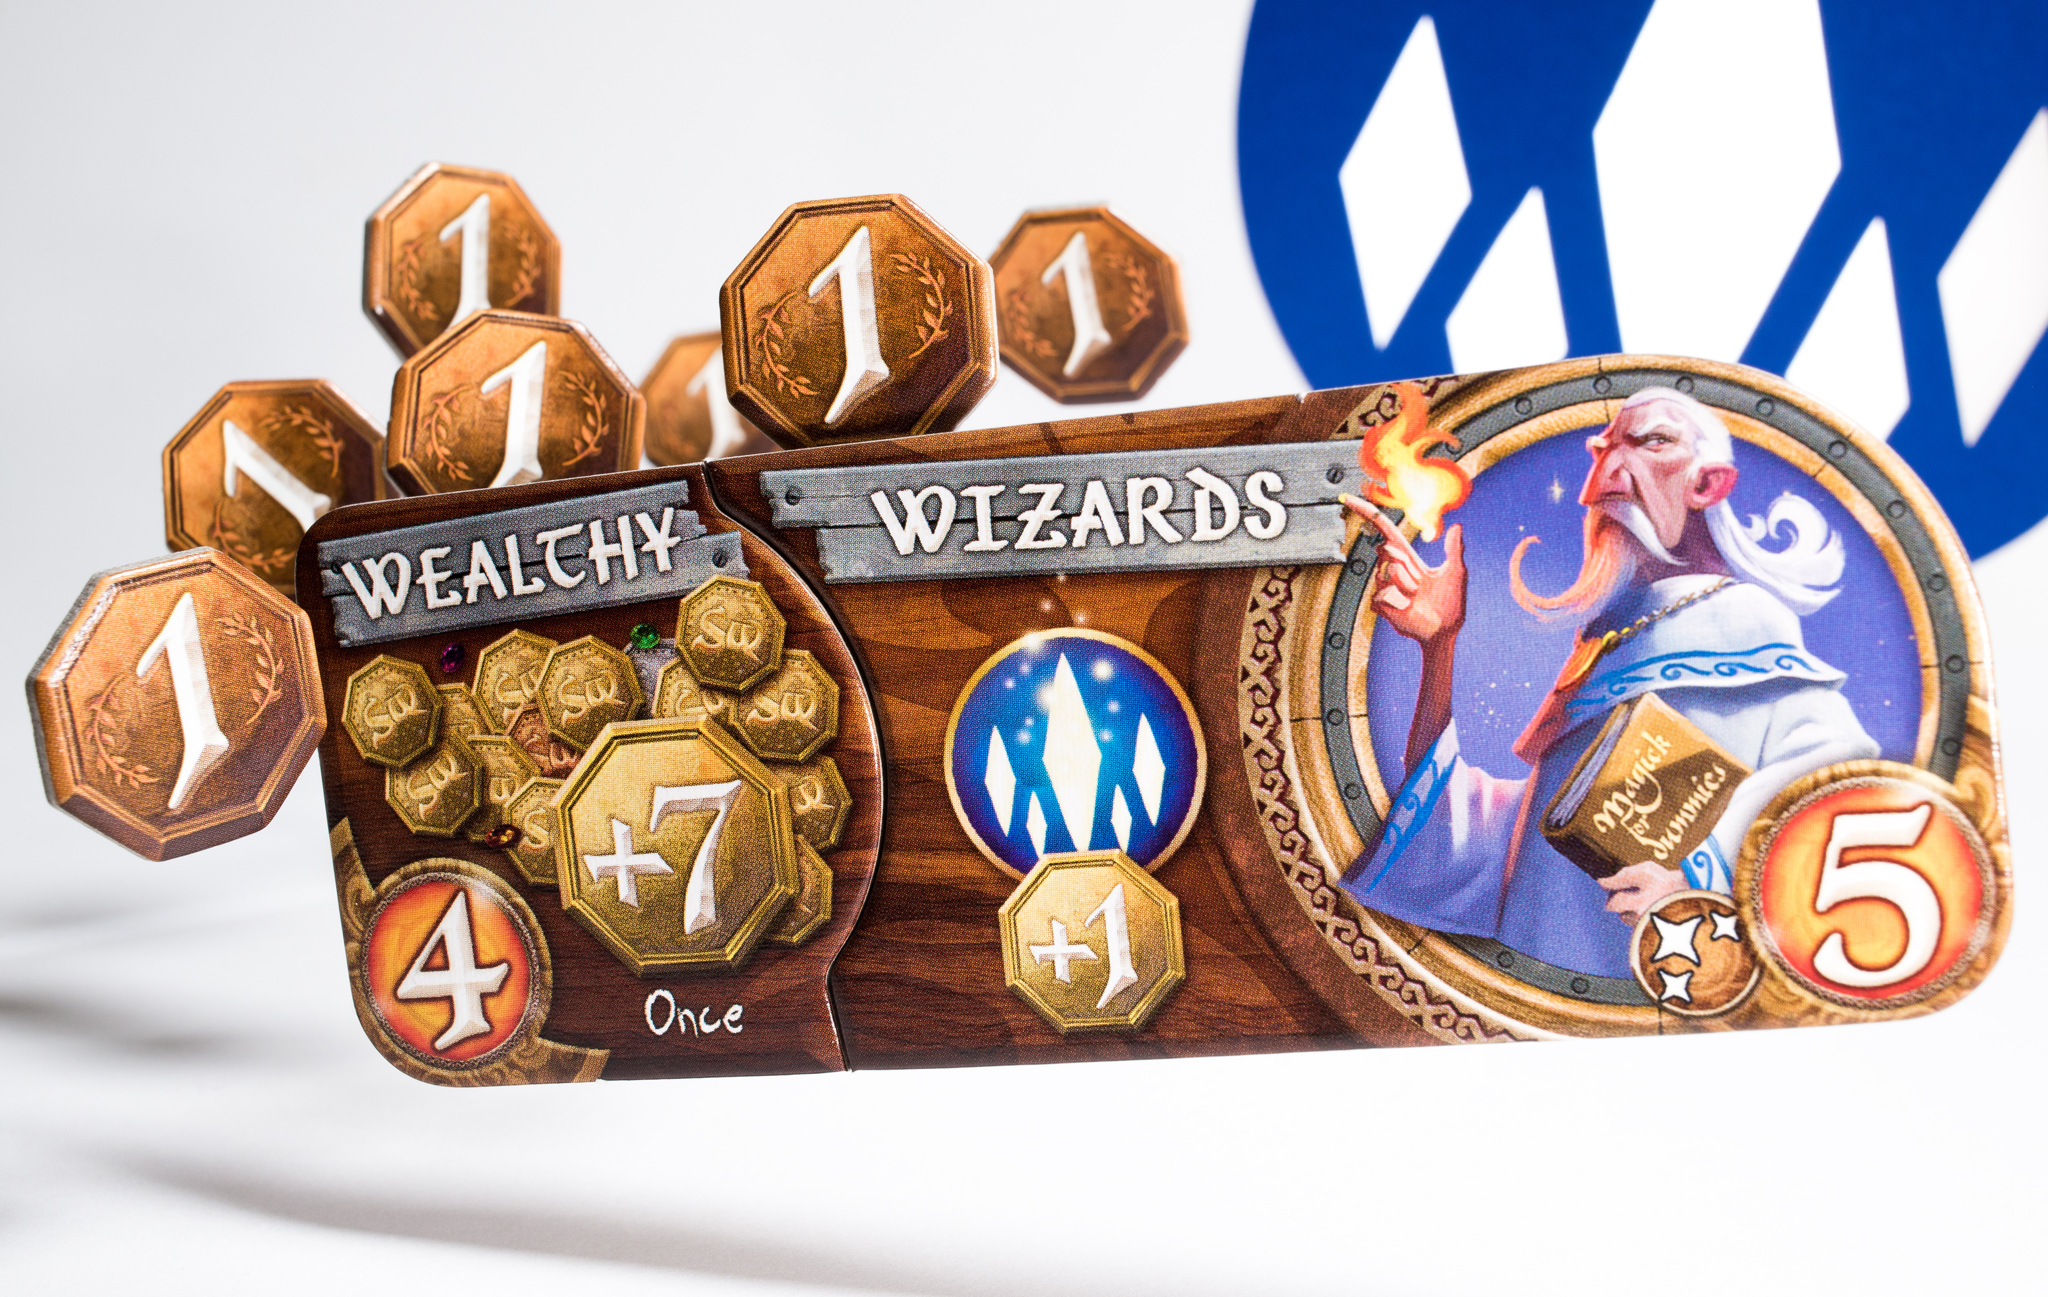 Wealthy Wizard faction from Small World